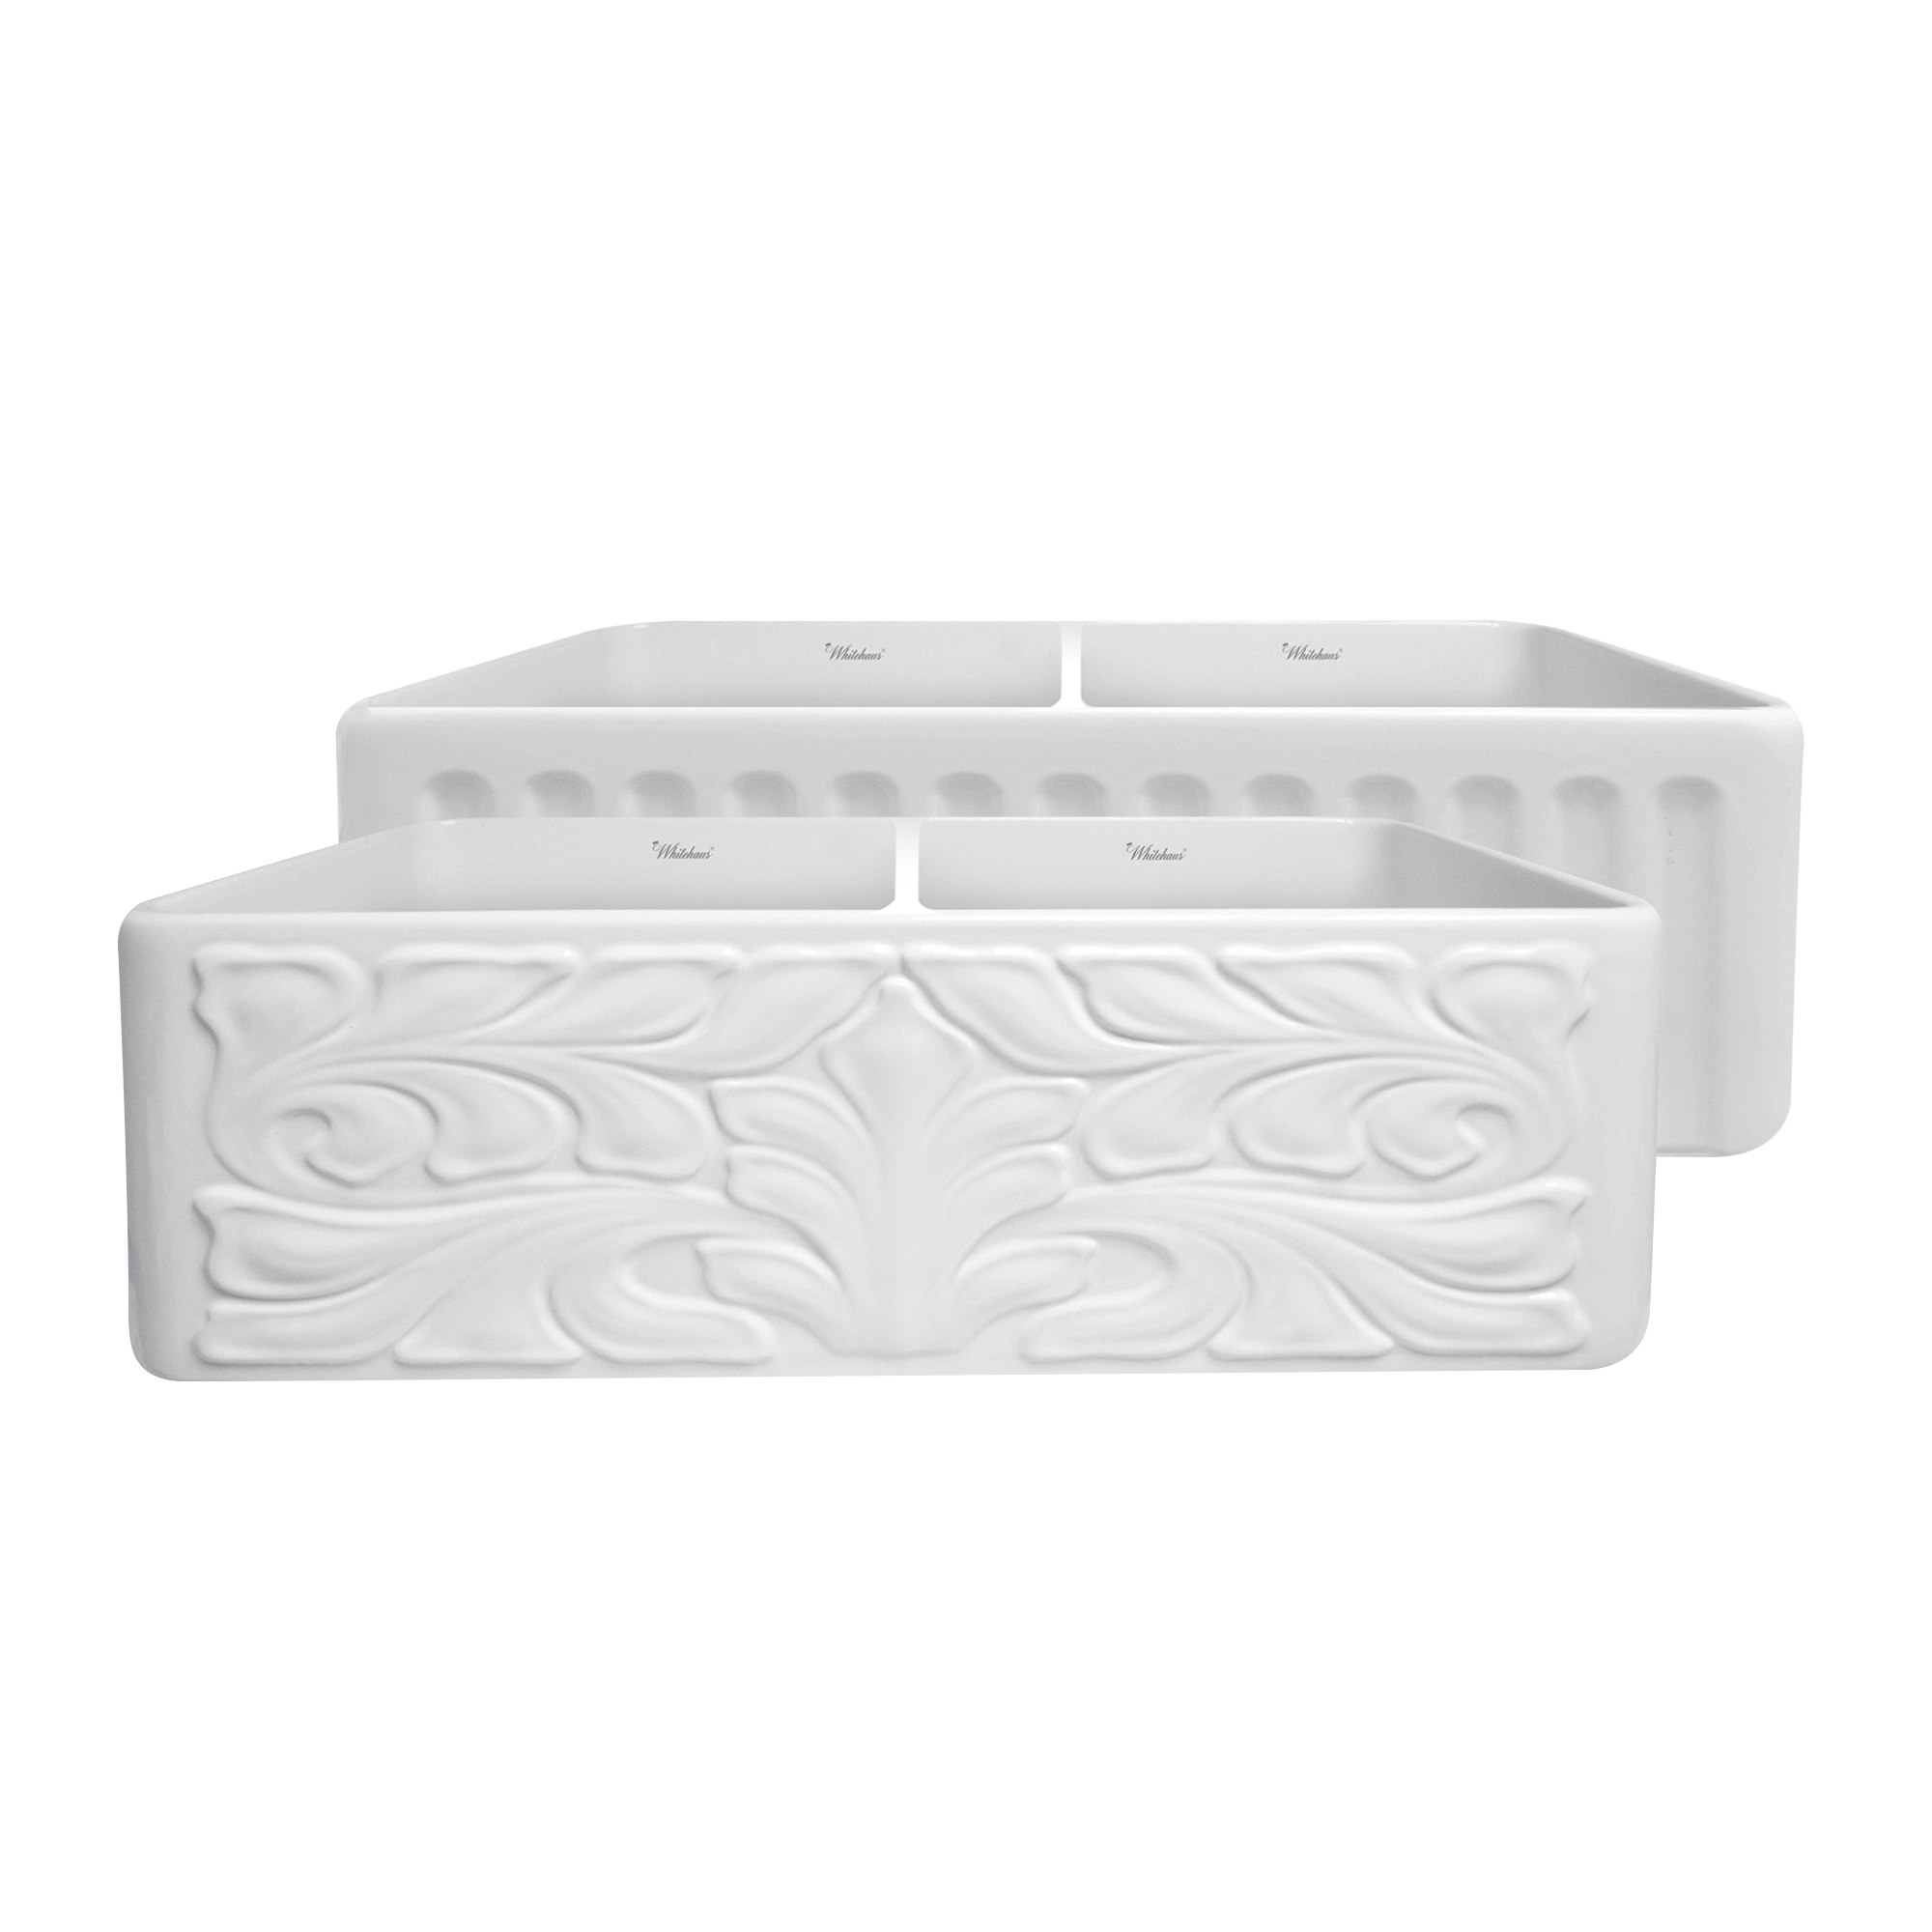 Fire Clay Sinks : ... 33 Inch Double Bowl Fireclay Sink w/ A Gothic Swirl Design Front